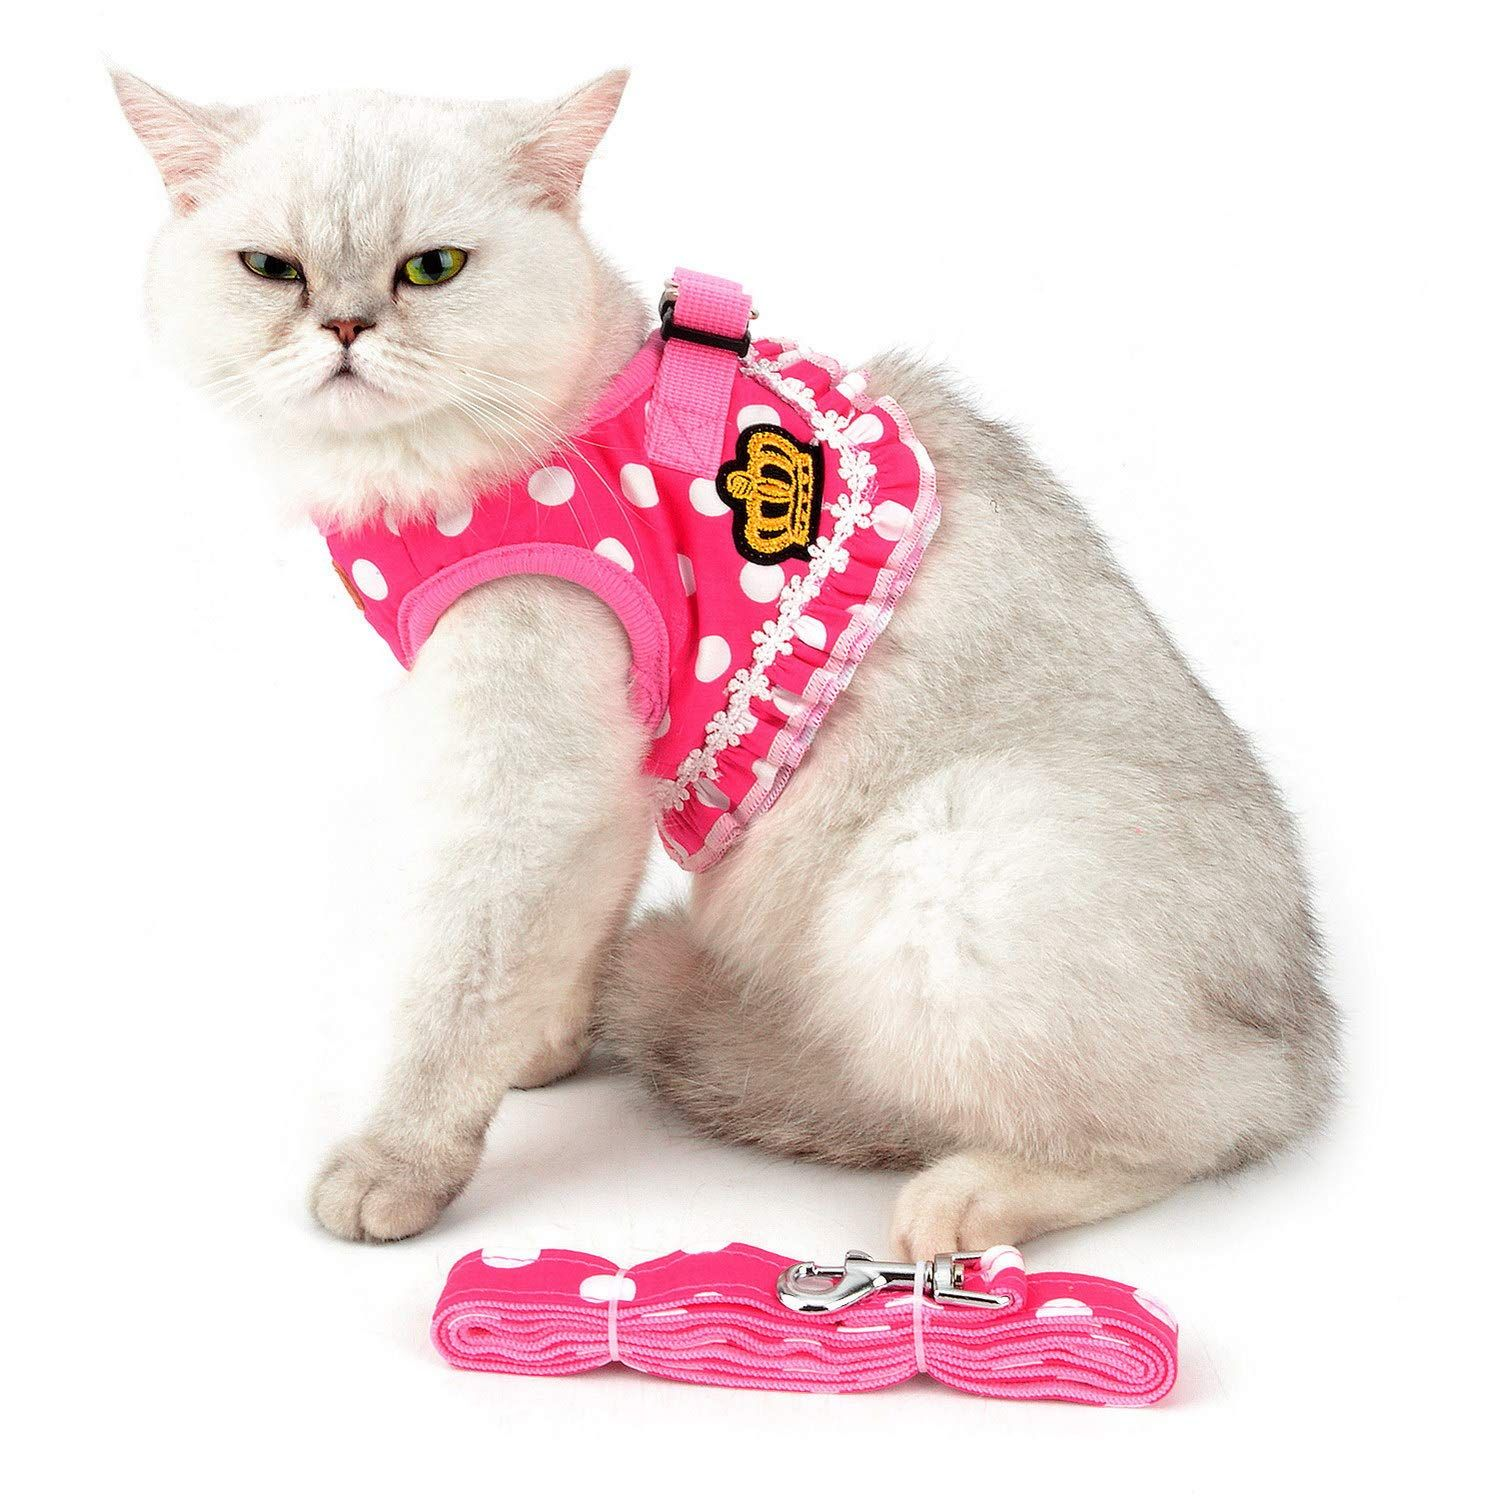 SMALLLEE_LUCKY_STORE Polka Dot Crown Ruffle Cat Harness